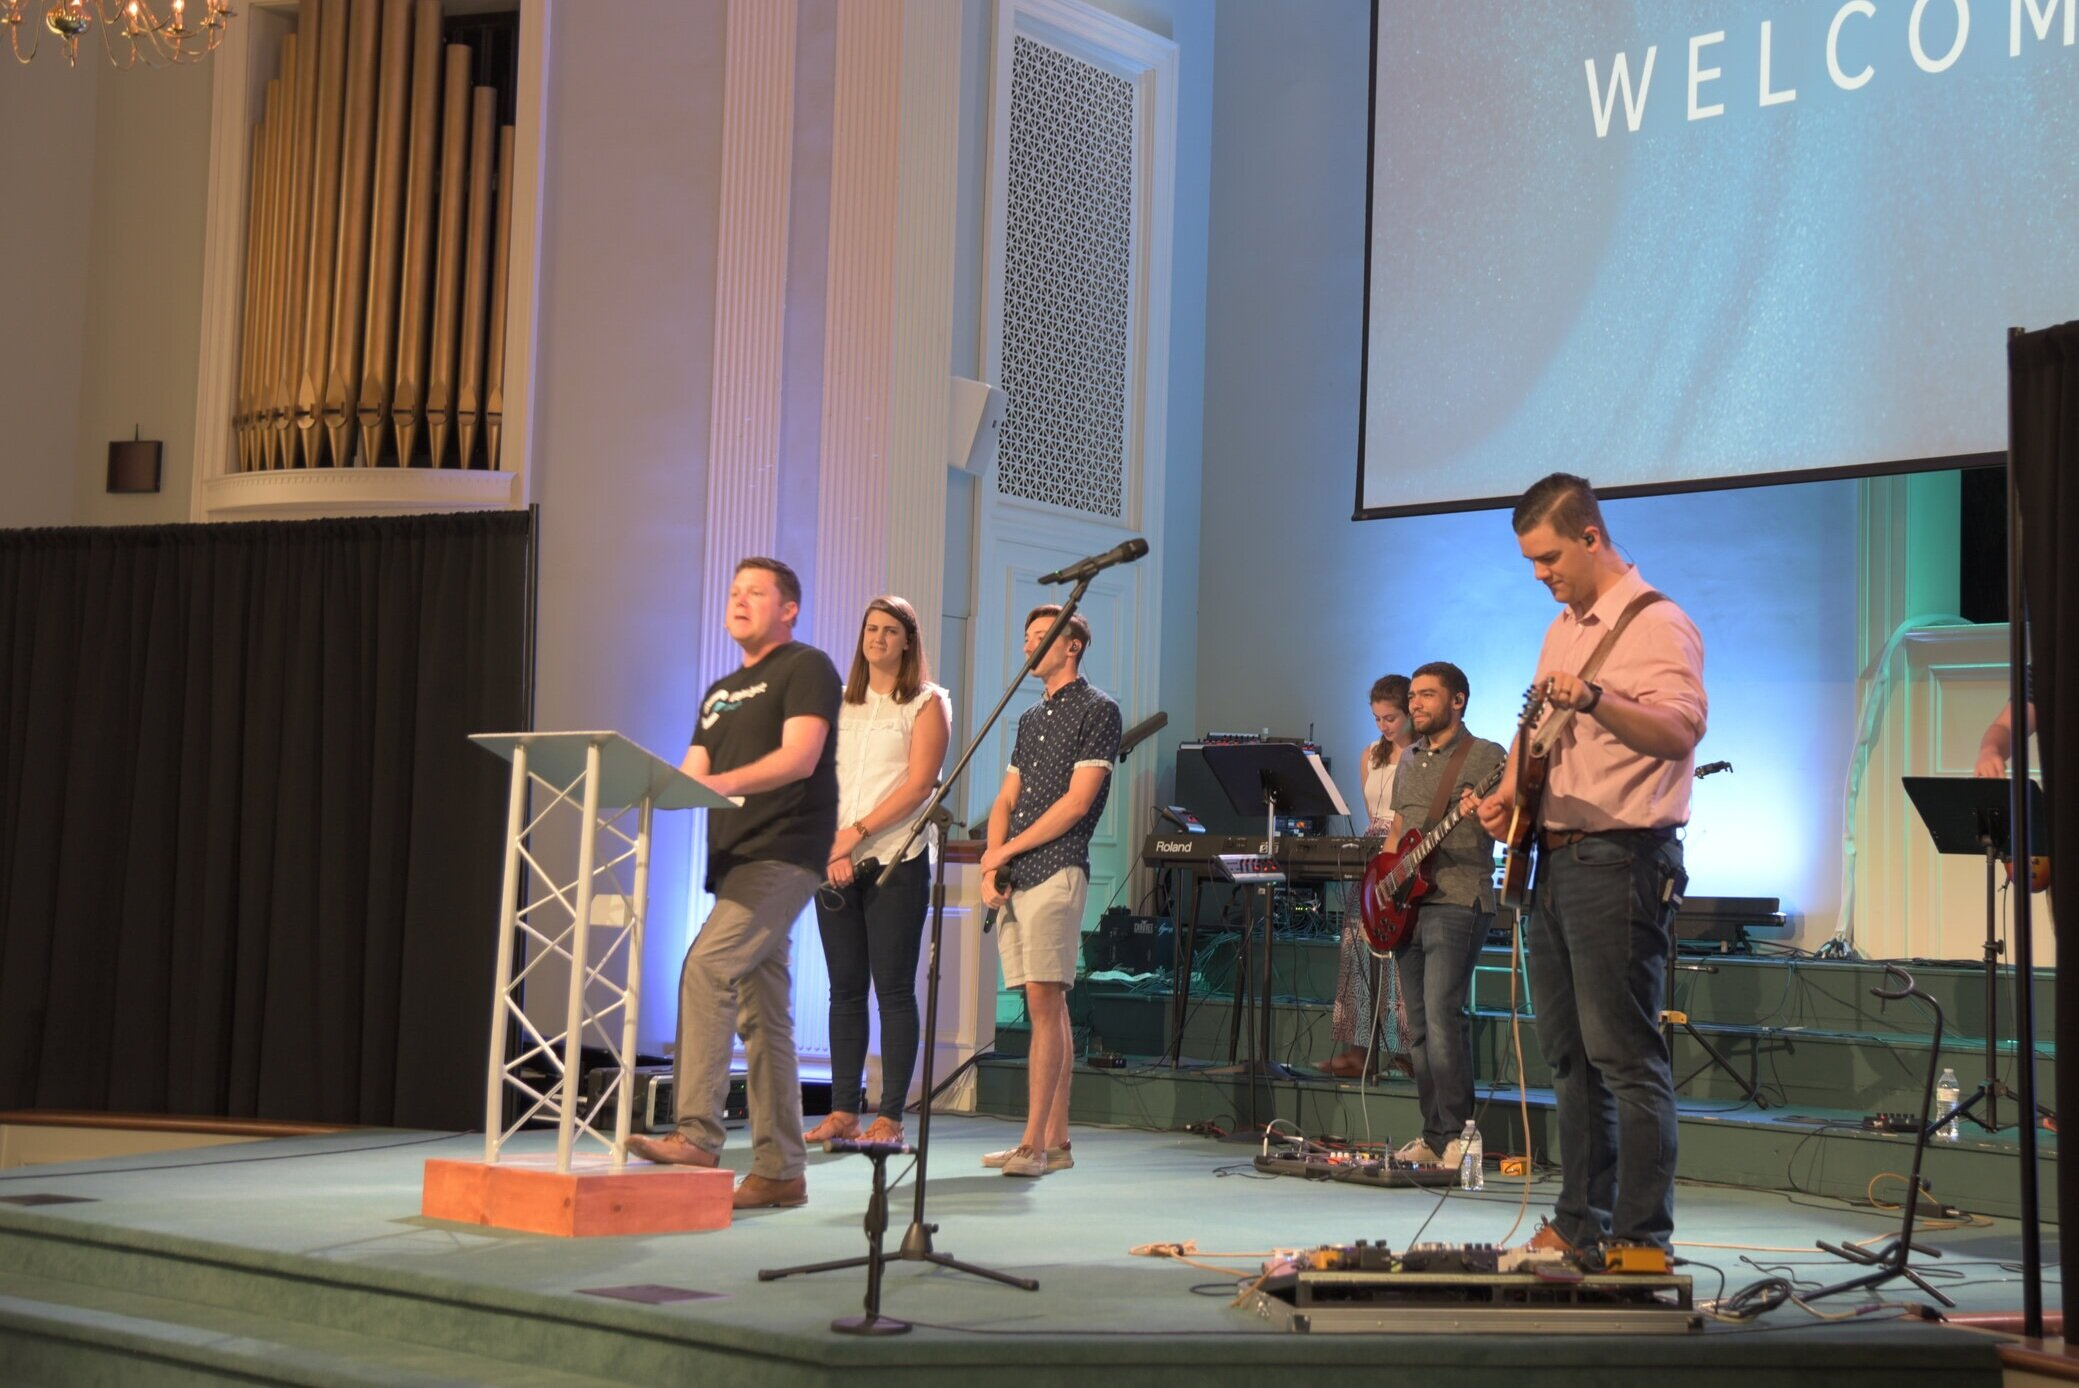 About Us - Use the Links Below to Find Out More About Catalyst Church